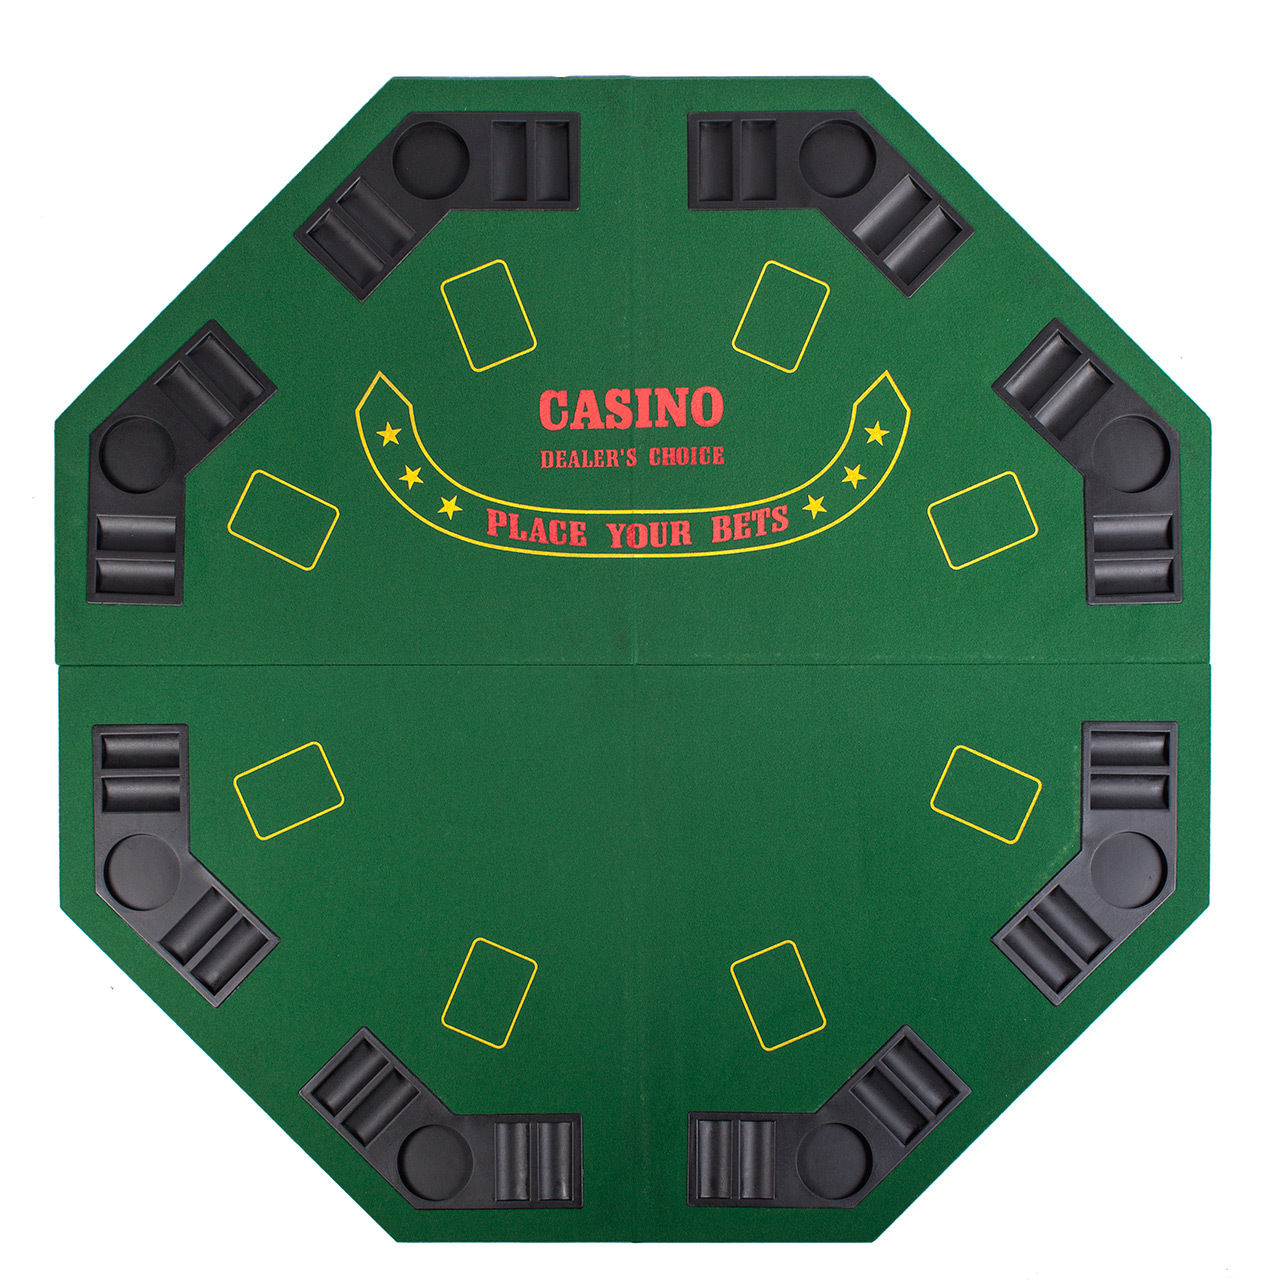 Poker Gamble Games Octagon Black 48 Quot Casino Chips Cards